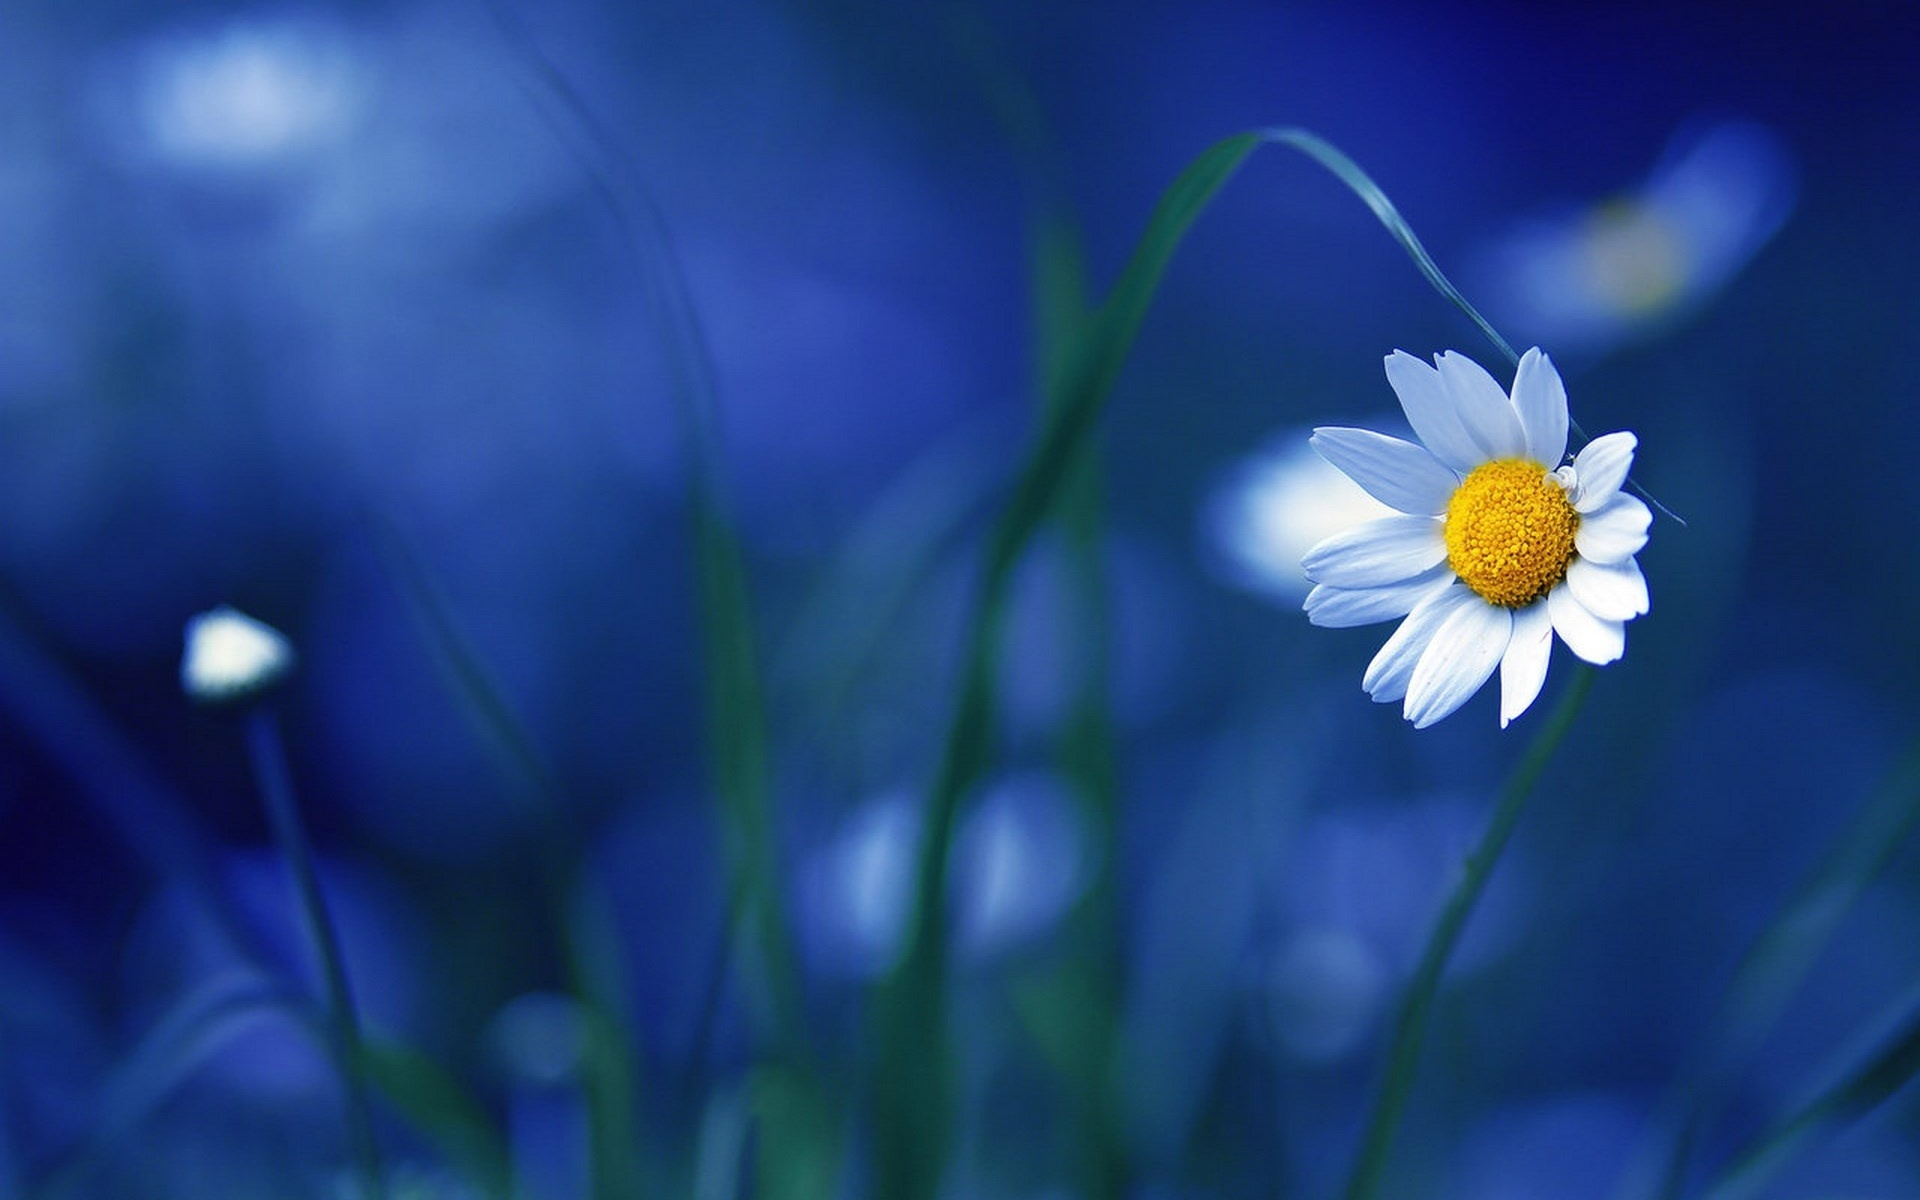 macro blue flower wallpaper - photo #7